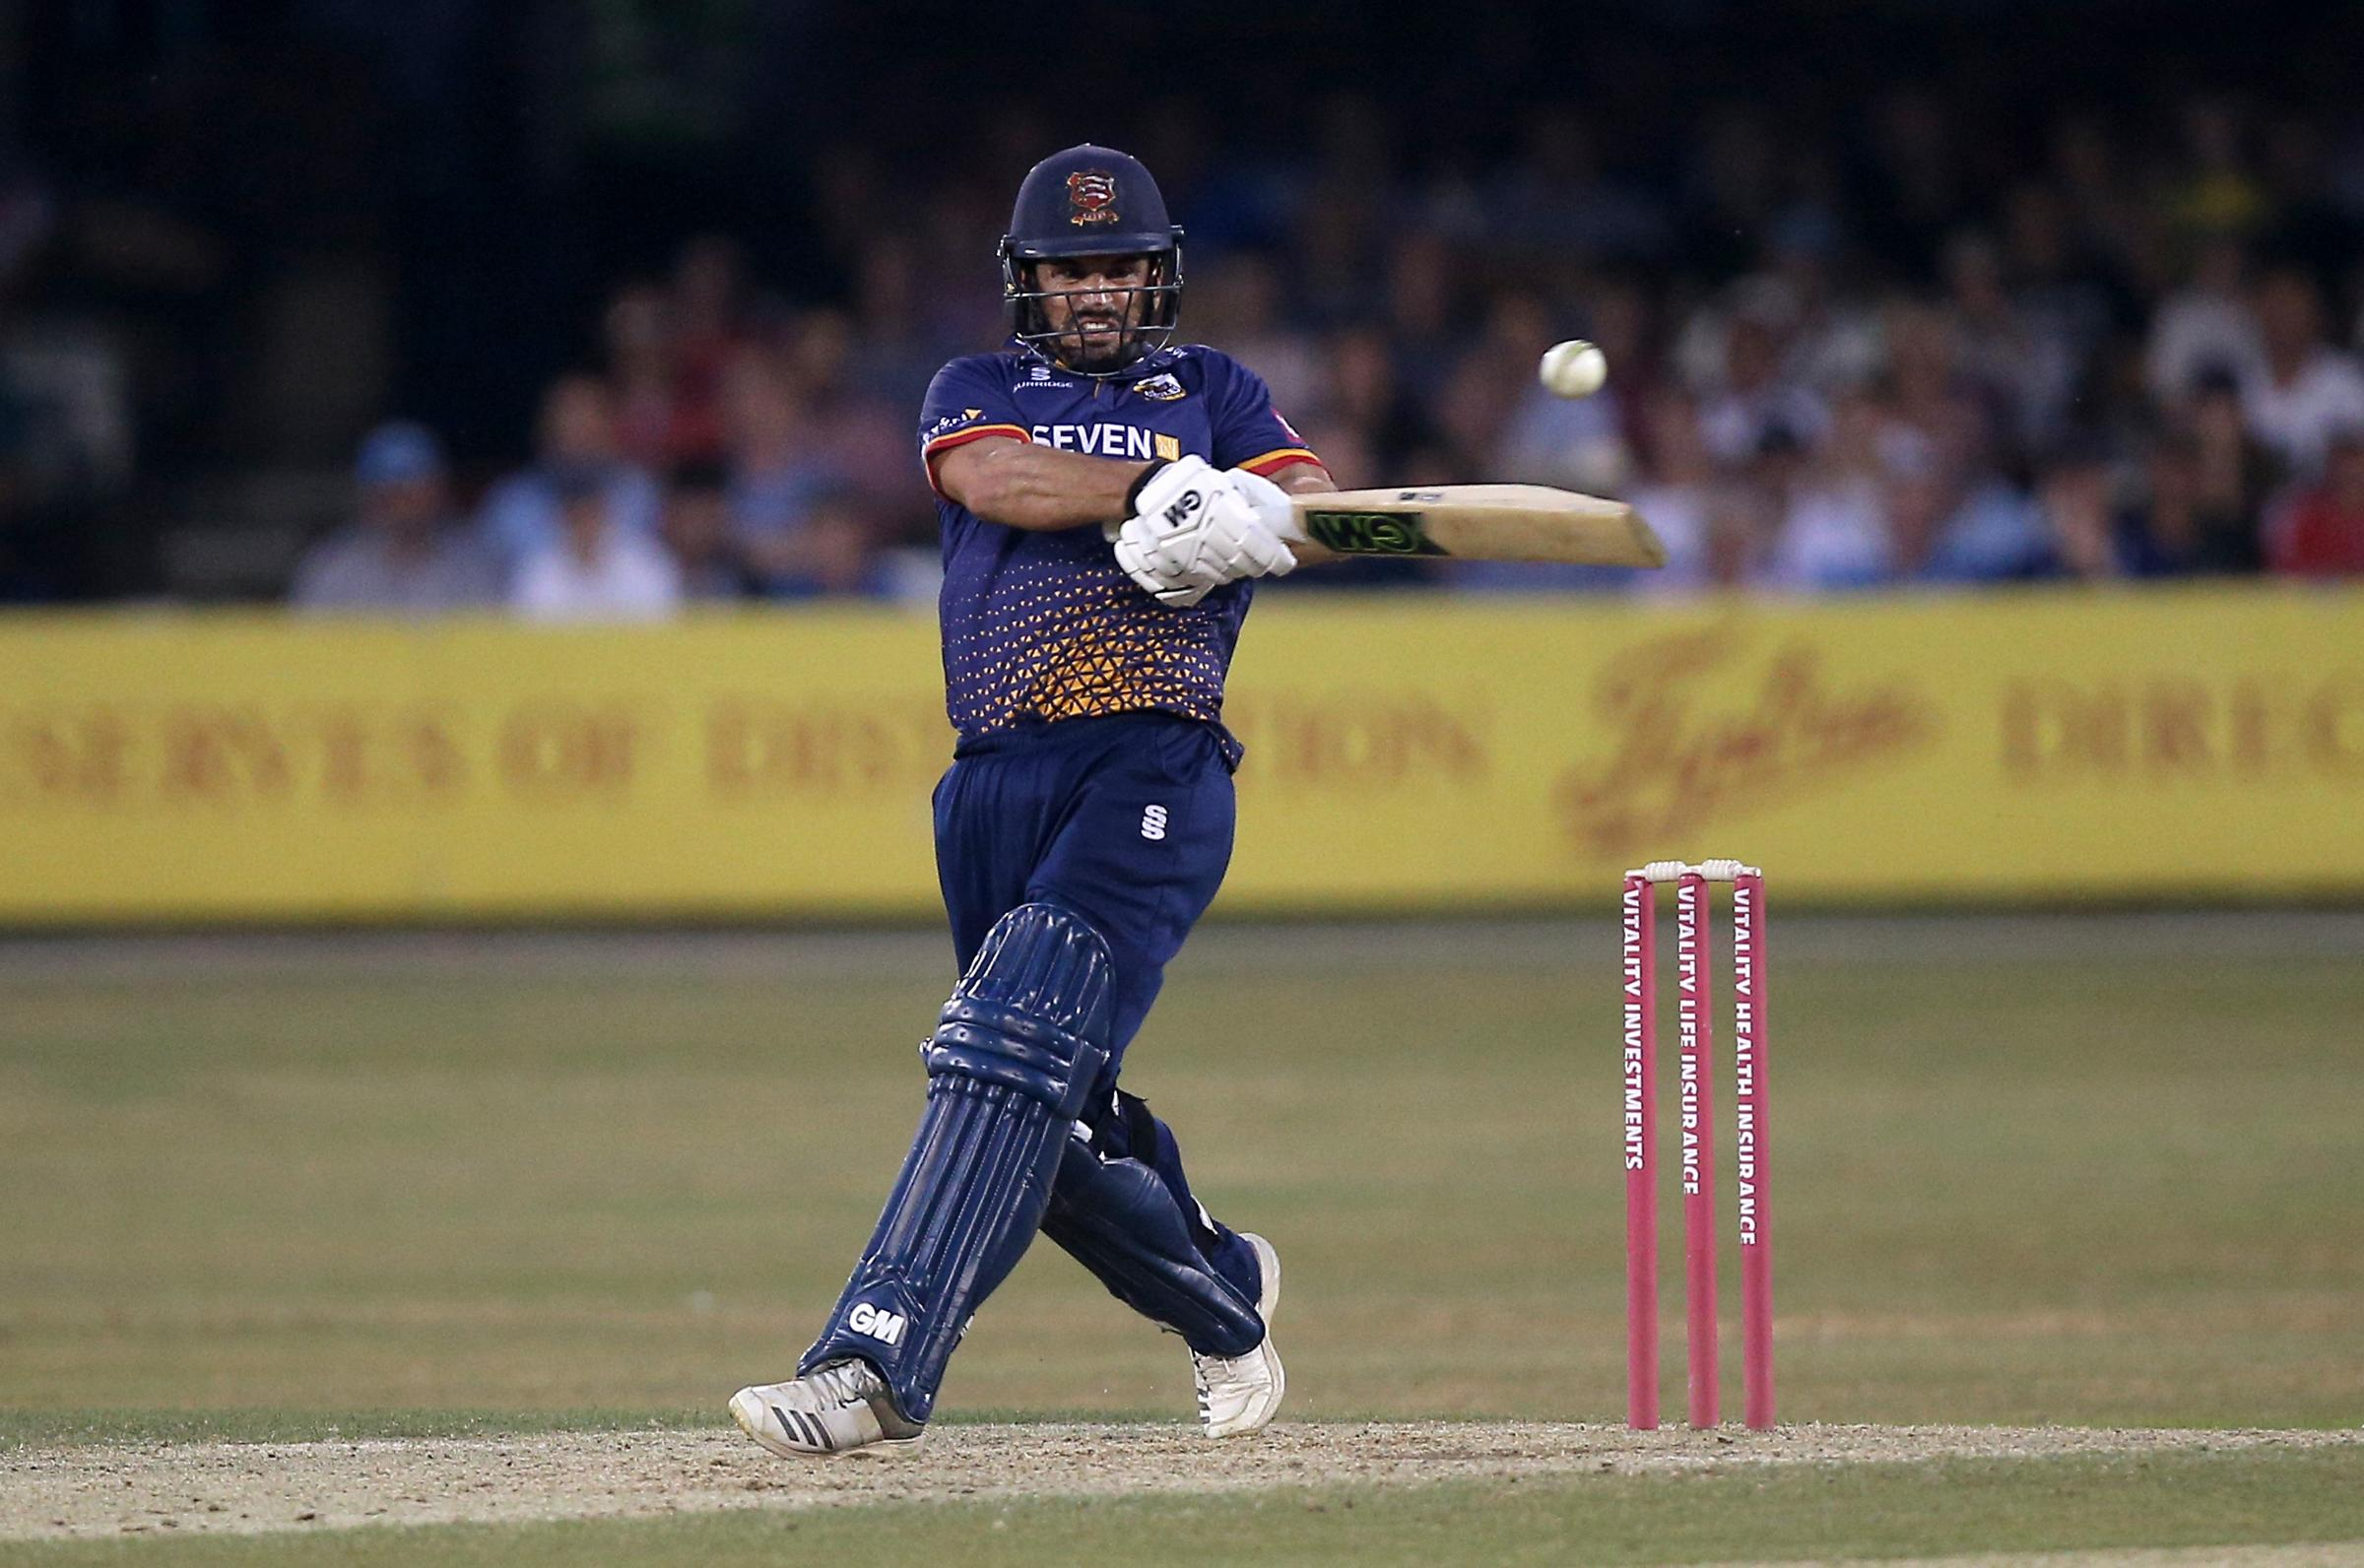 Ryan ten Doeschate hits 4 runs for Essex during Essex Eagles vs Middlesex, Vitality Blast T20 Cricket at The Cloudfm County Ground on 6th July 2018.